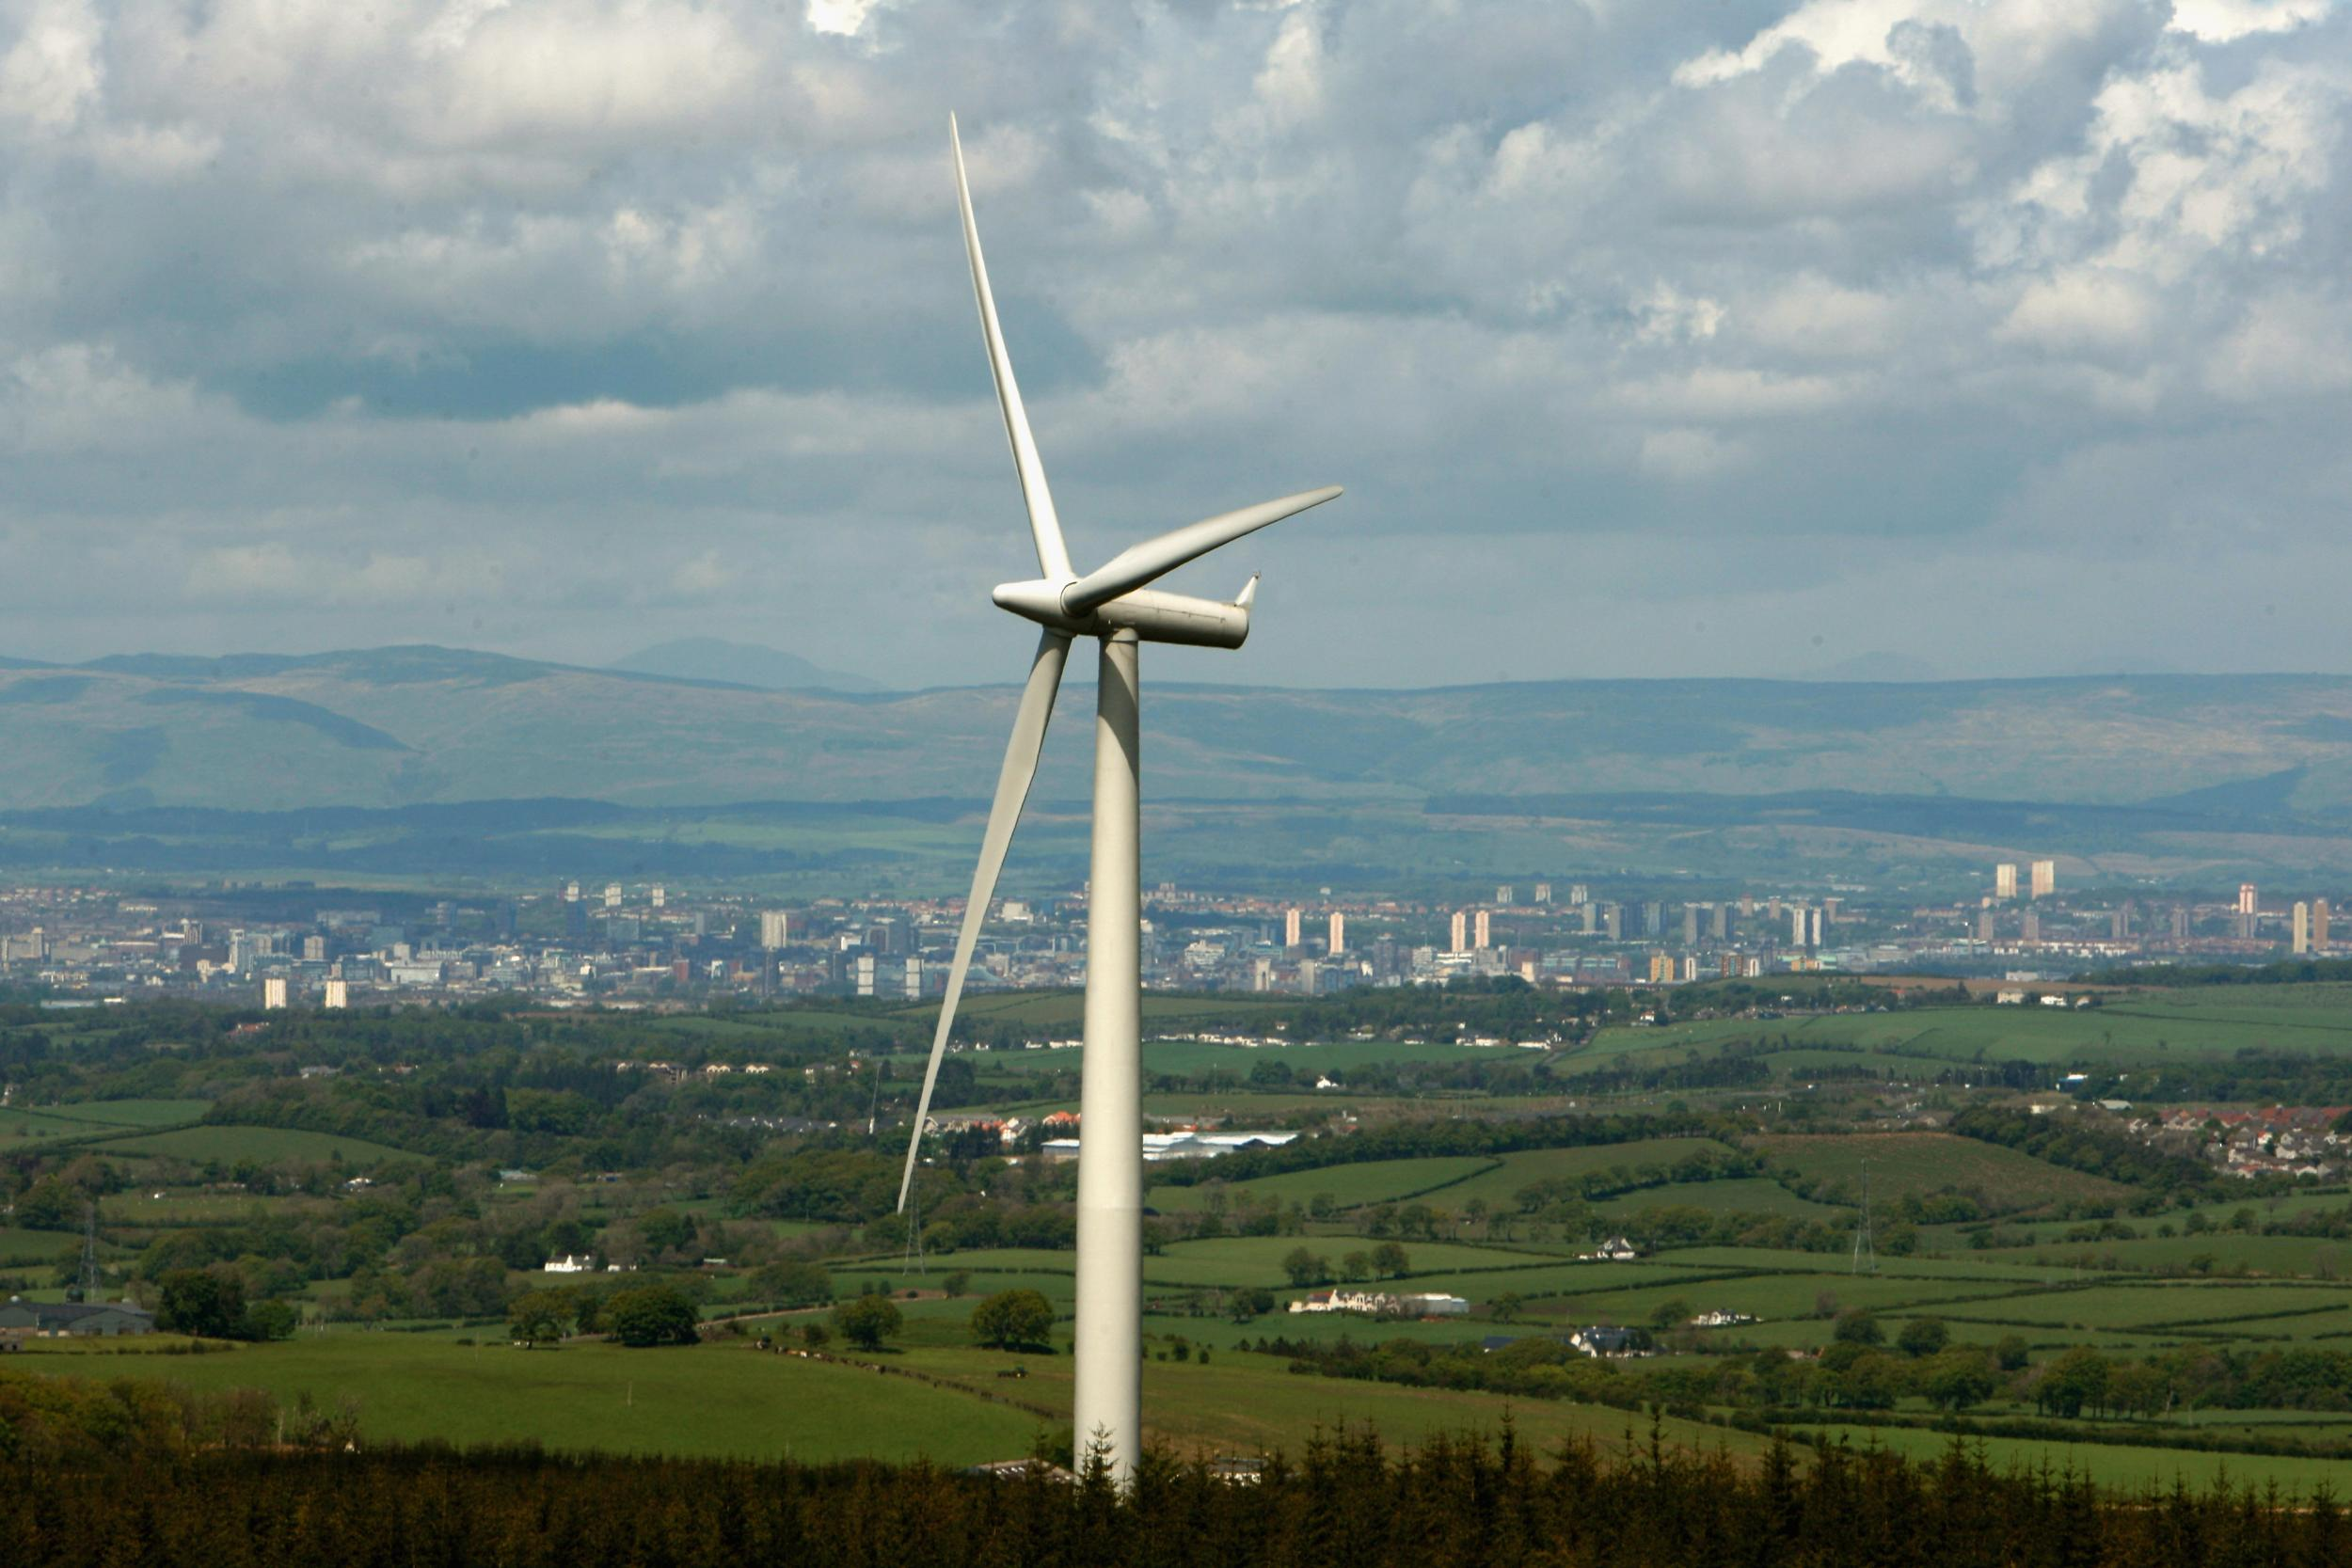 Wind power is now the cheapest electricity to produce in the UK